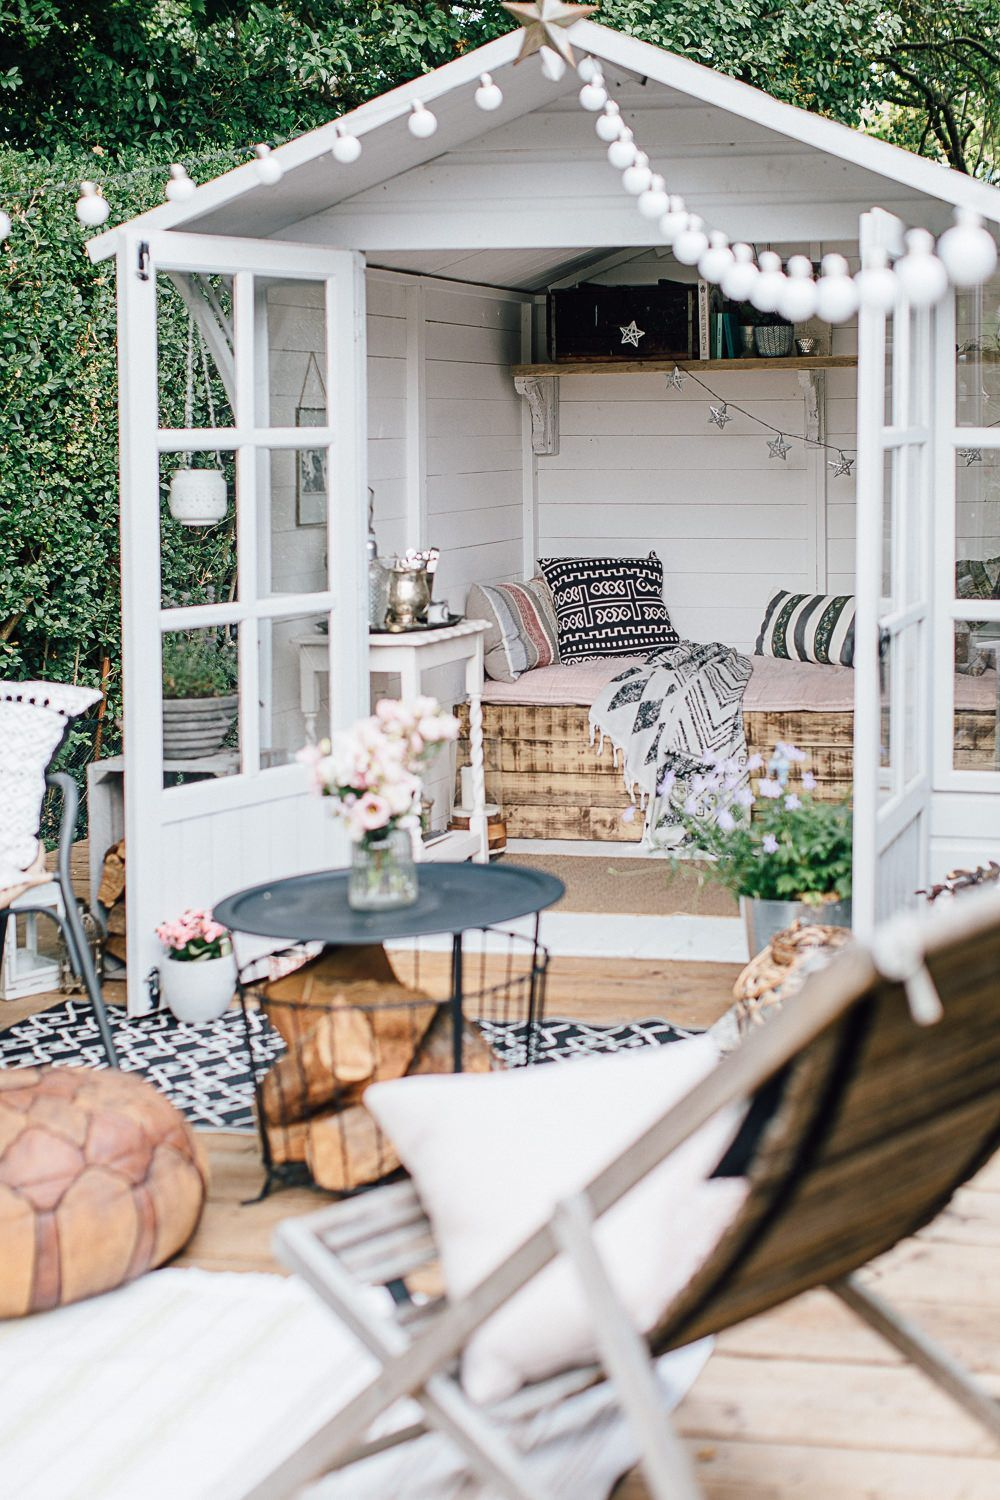 Global Inspired Home Tour {Upstairs} -  Summer House Painted In Cuprinol French Grey – Theresa's Four Bed Edwardian #terrace. Garden Wi - #dressingroom #global #home #homedecor #house #inspired #kidsroom #livingroomdecor #Tour #upstairs